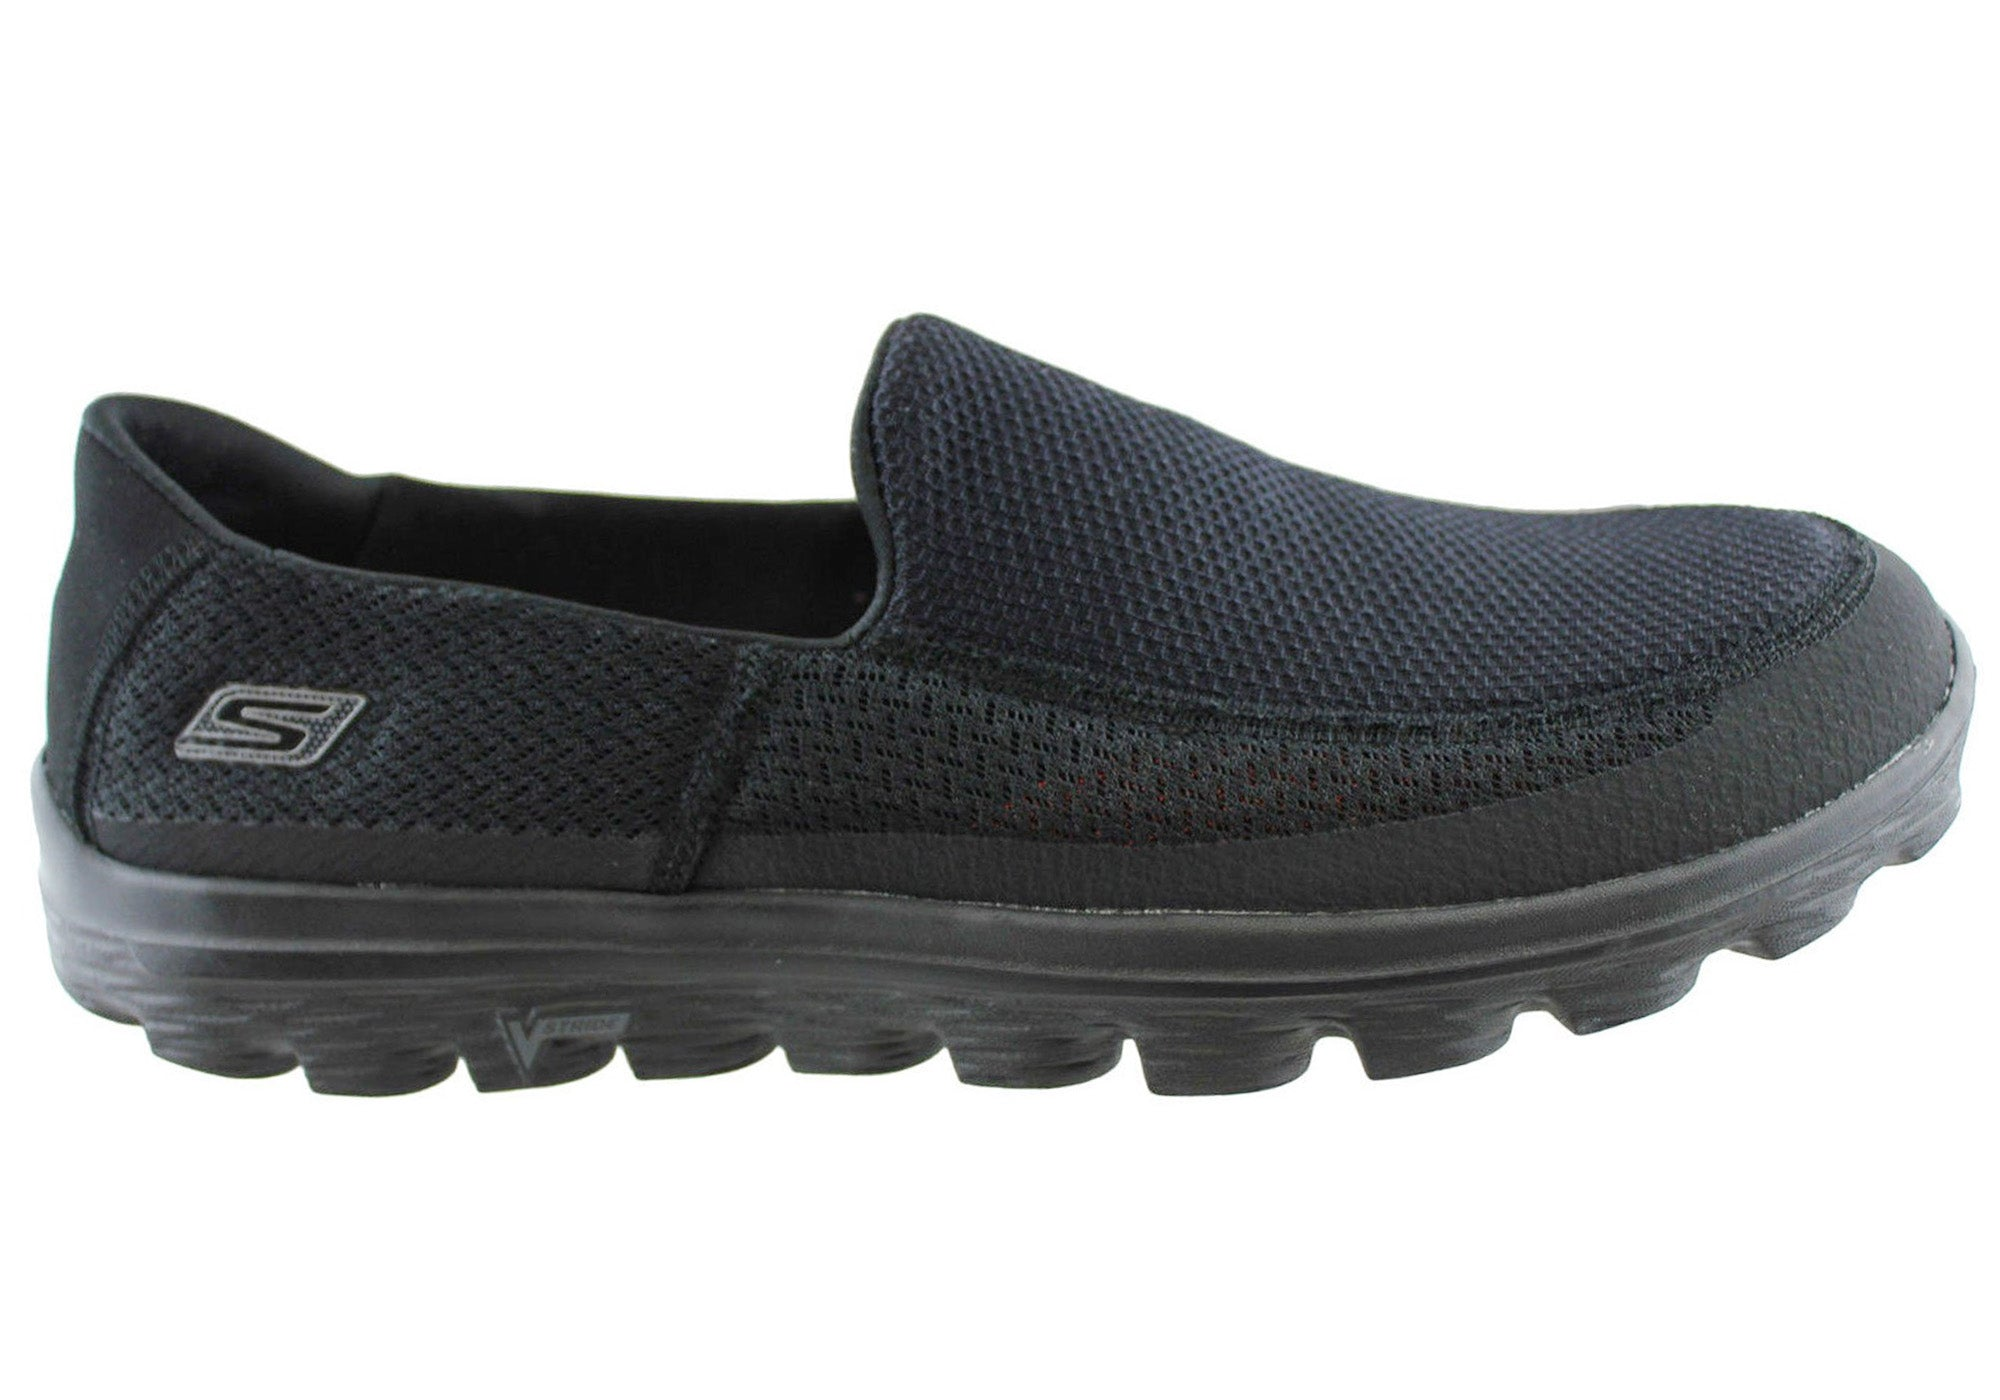 80f4825efeda Skechers Go Walk 2 Mens Comfortable Slip On Casual Shoes